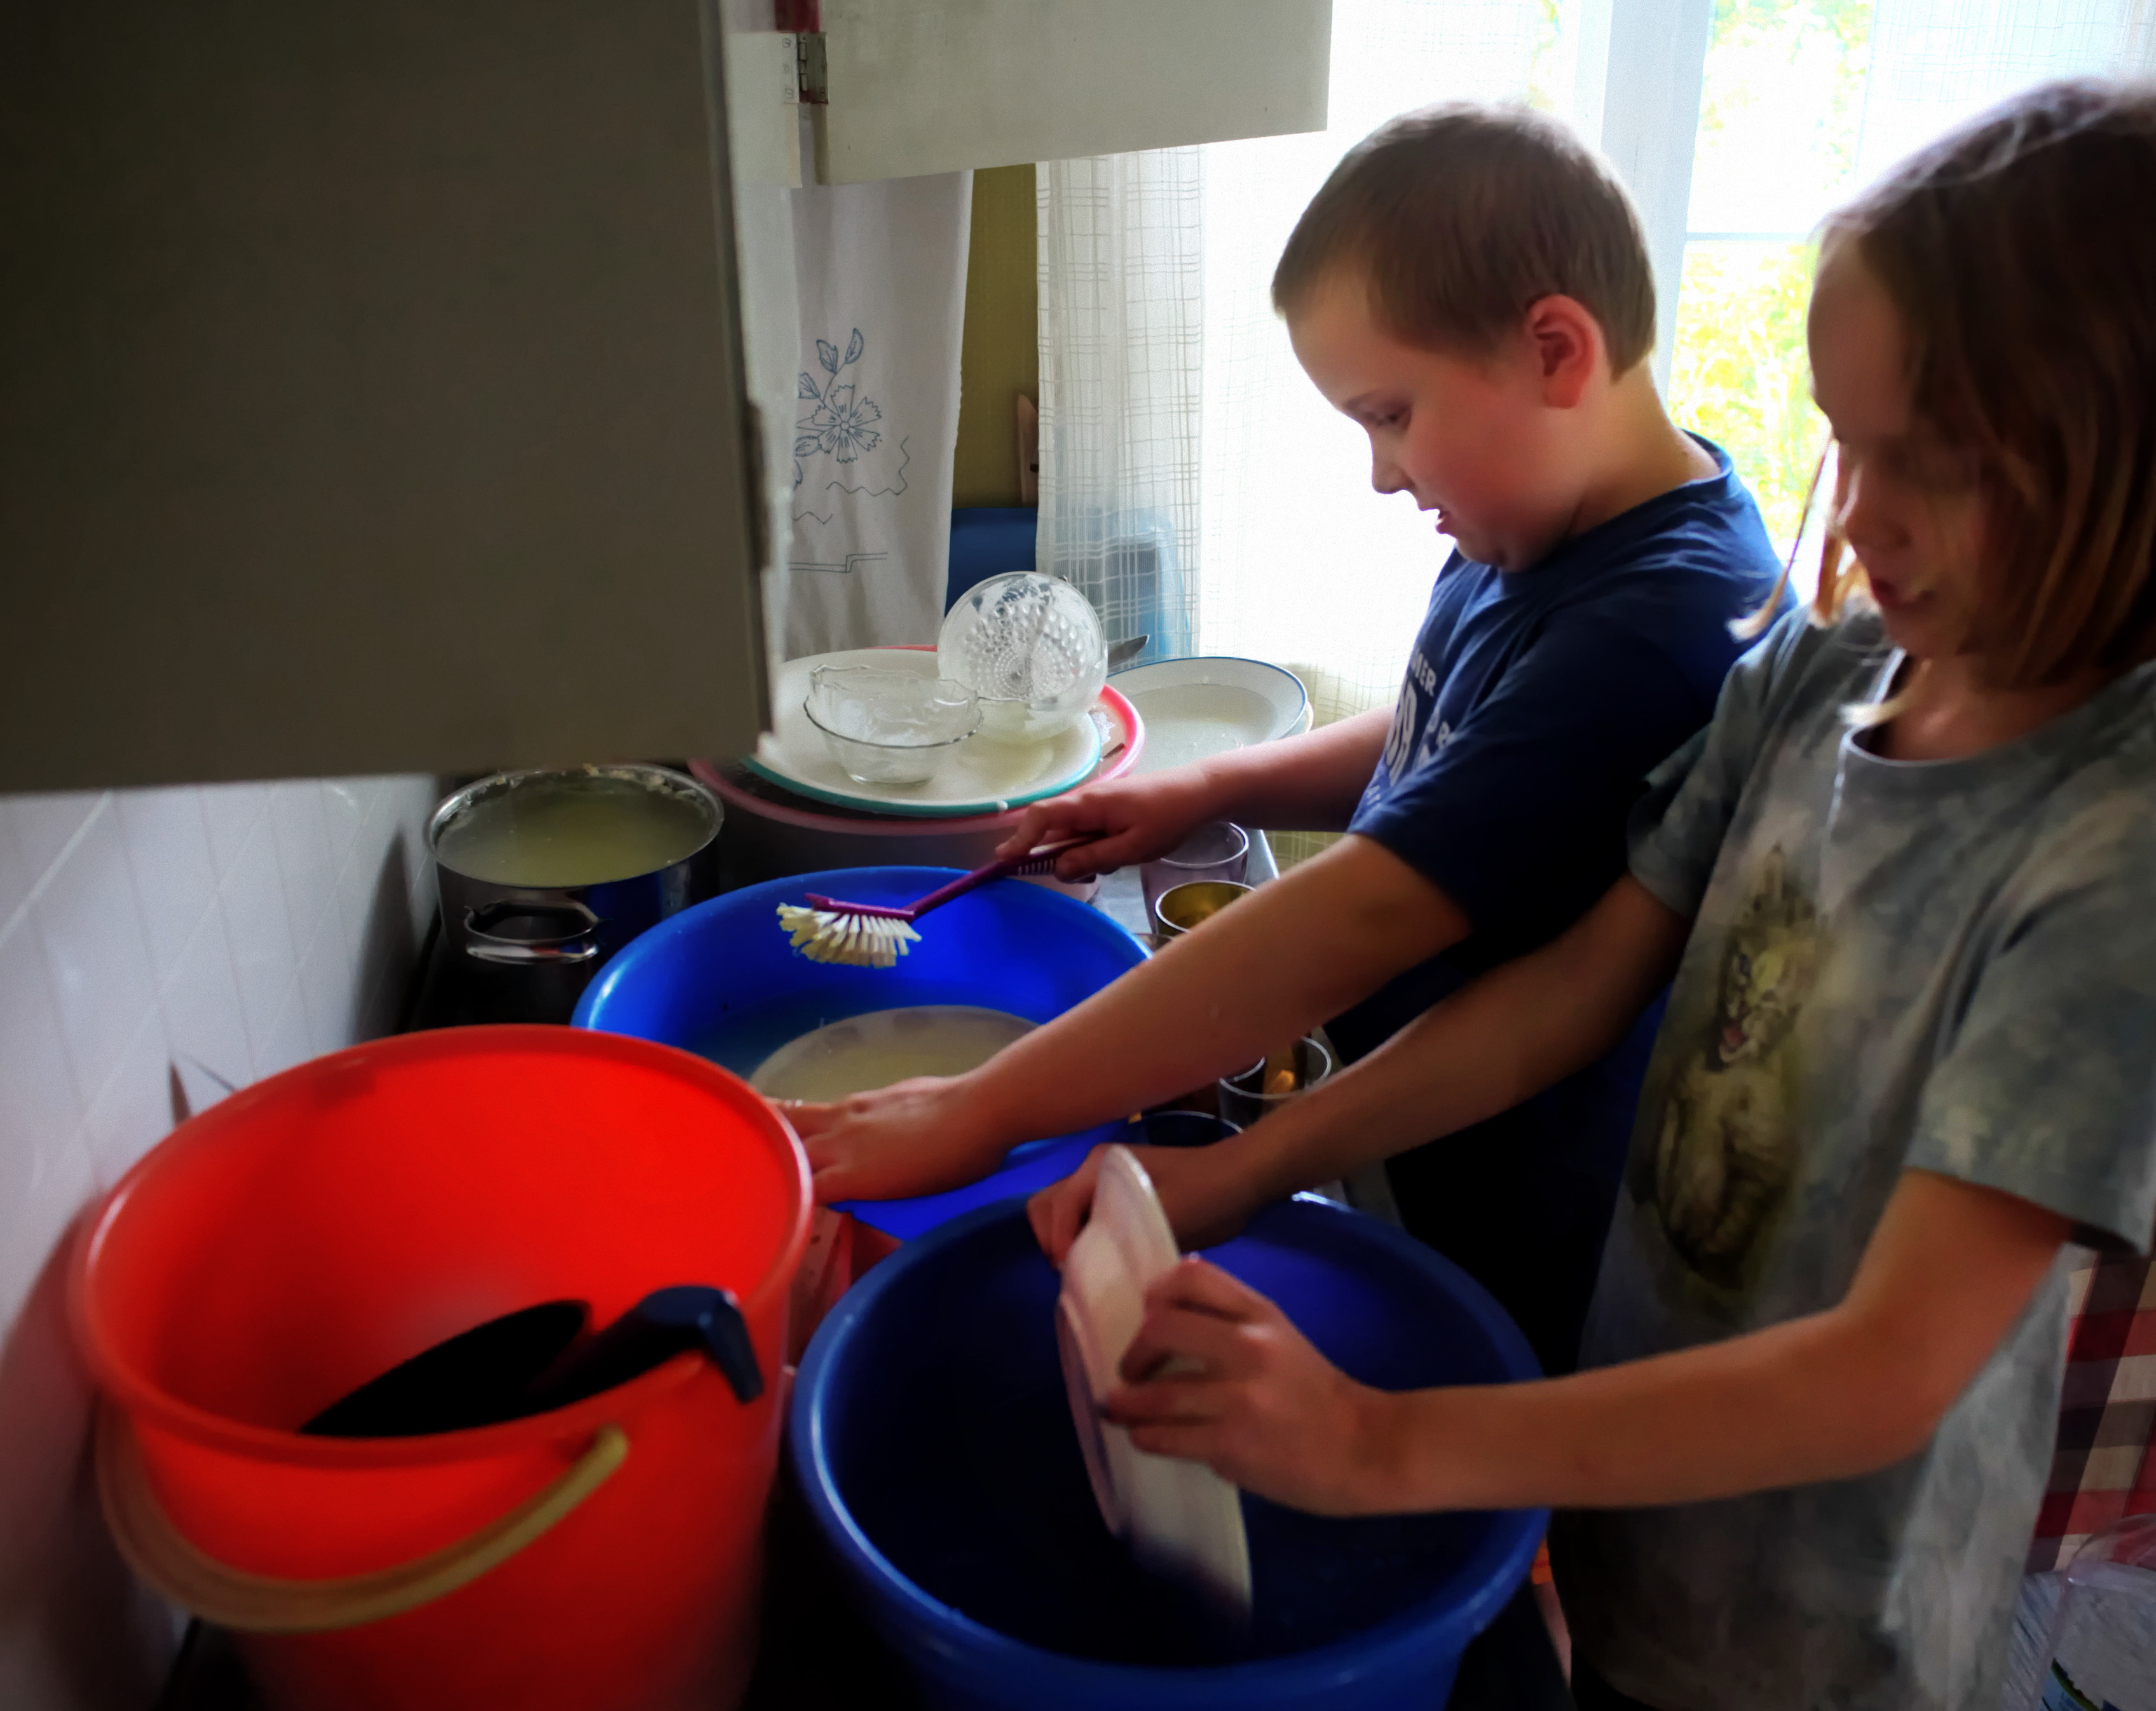 File:Washing The Dishes.jpg